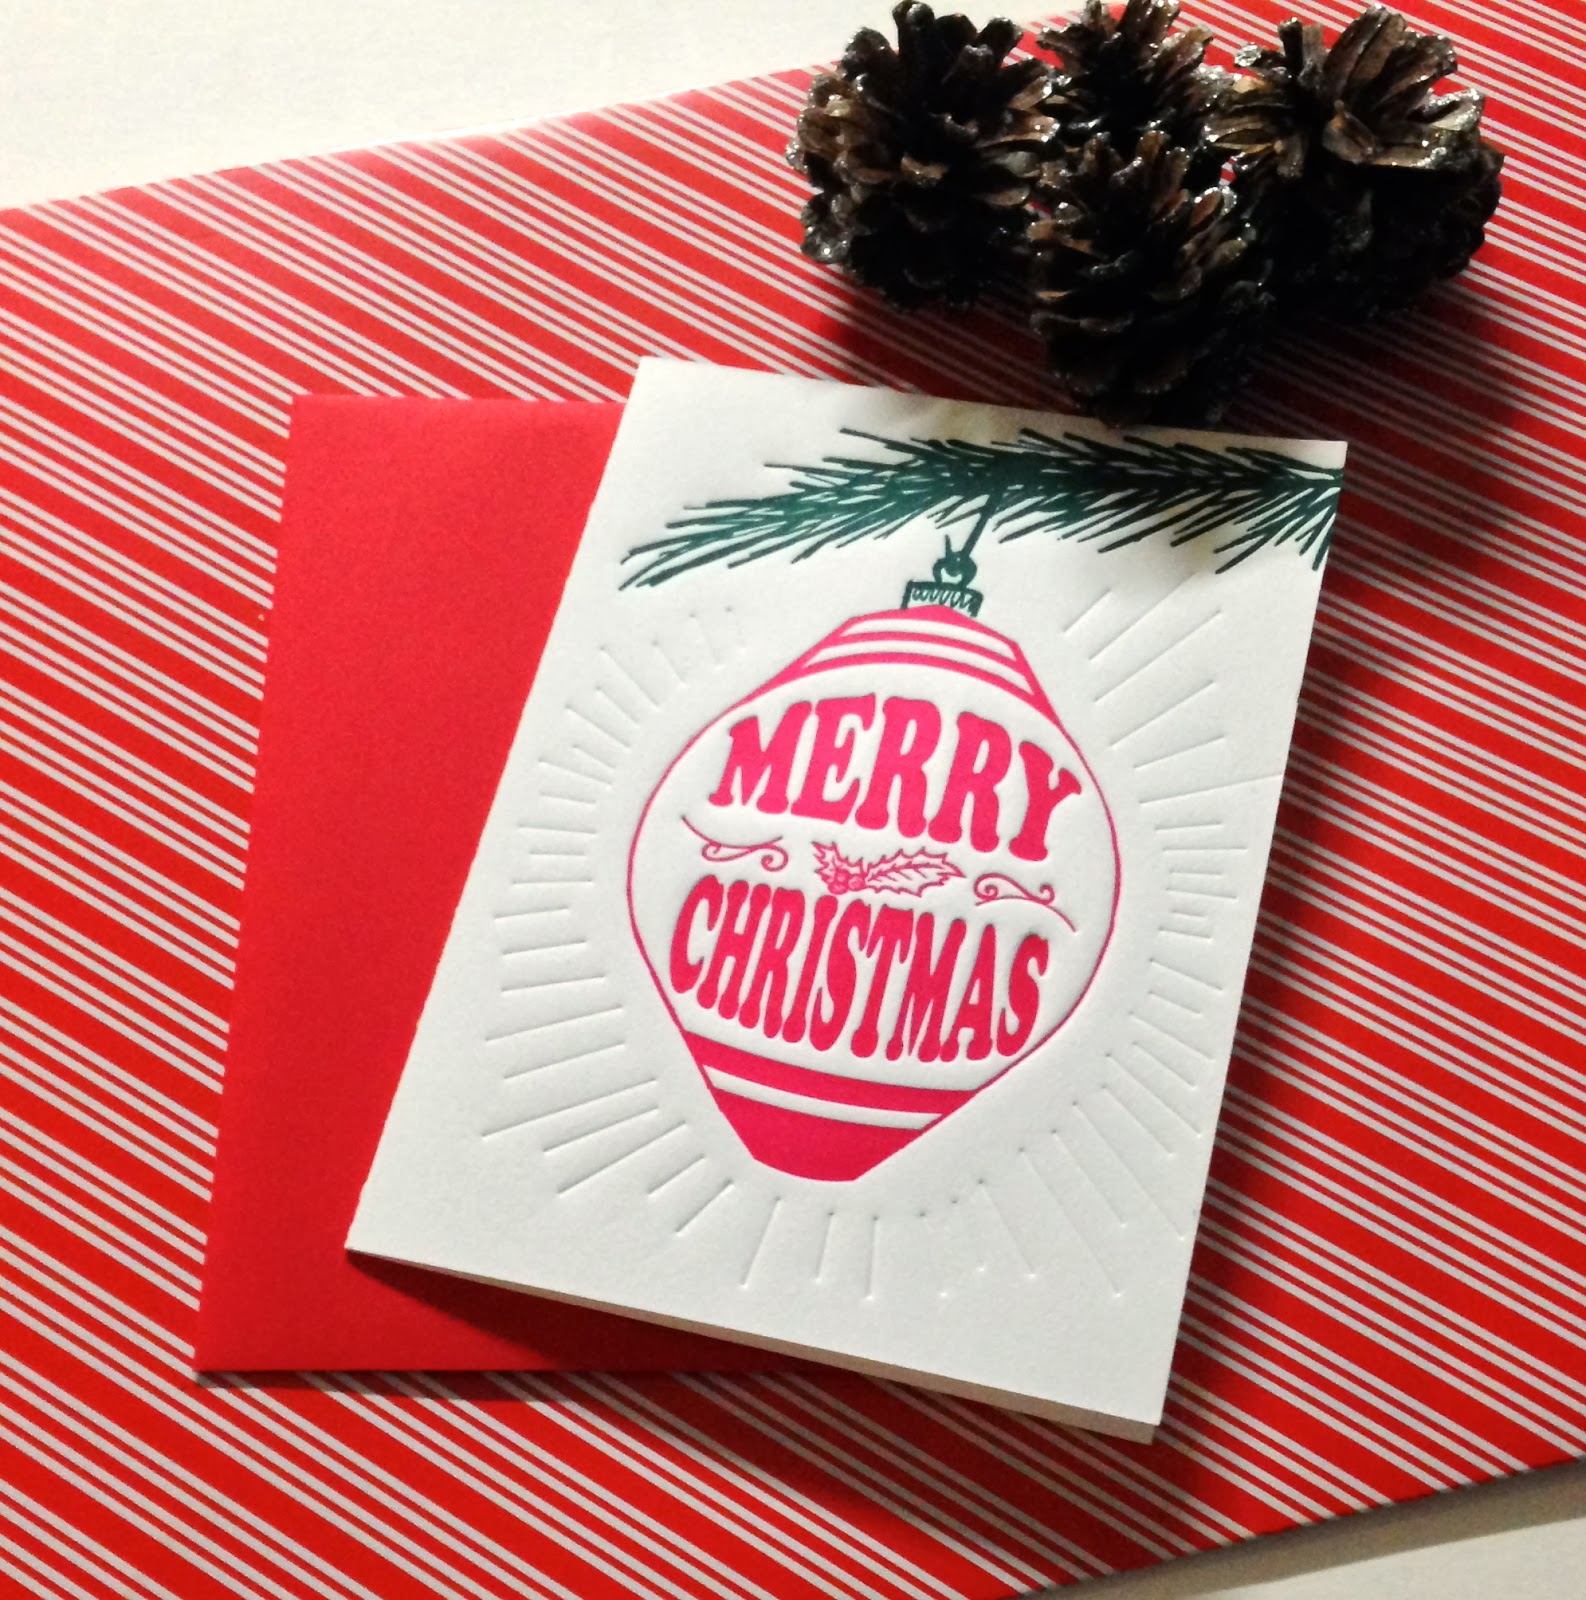 The final Christmas Ornament card with its Cherry Red envelope.